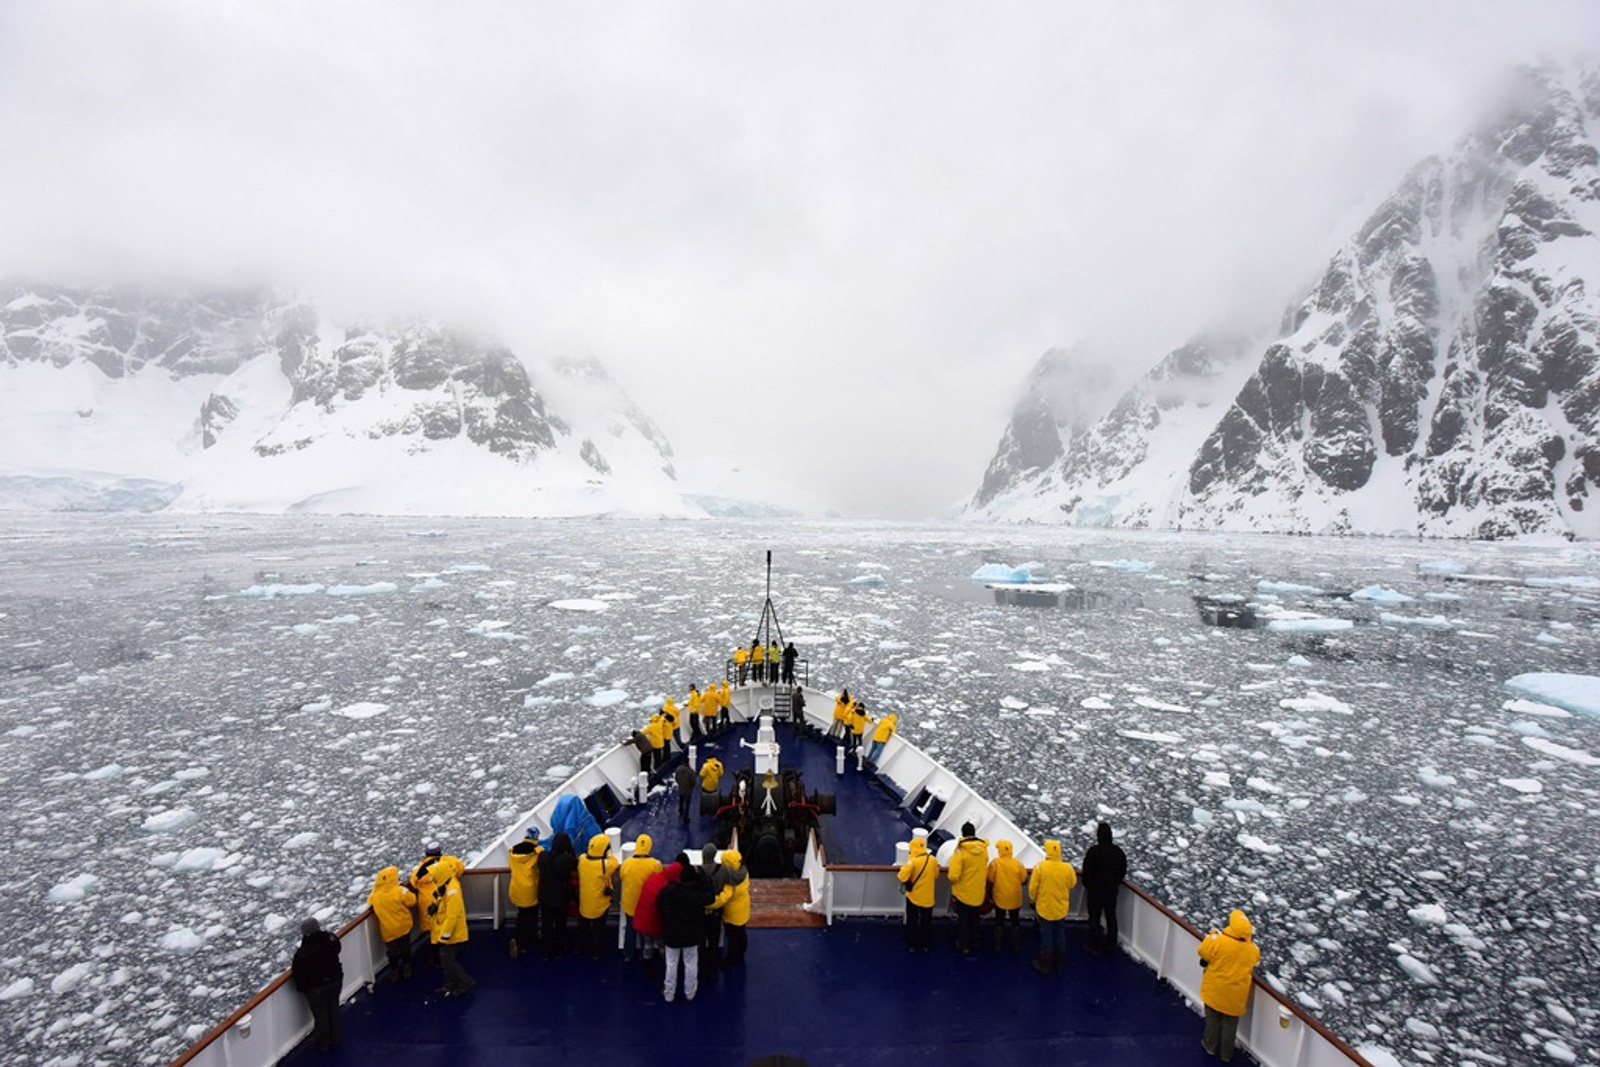 Passengers gather on deck to appreciate the icy waters of the Lemaire Channel on an Antarctic expedition.